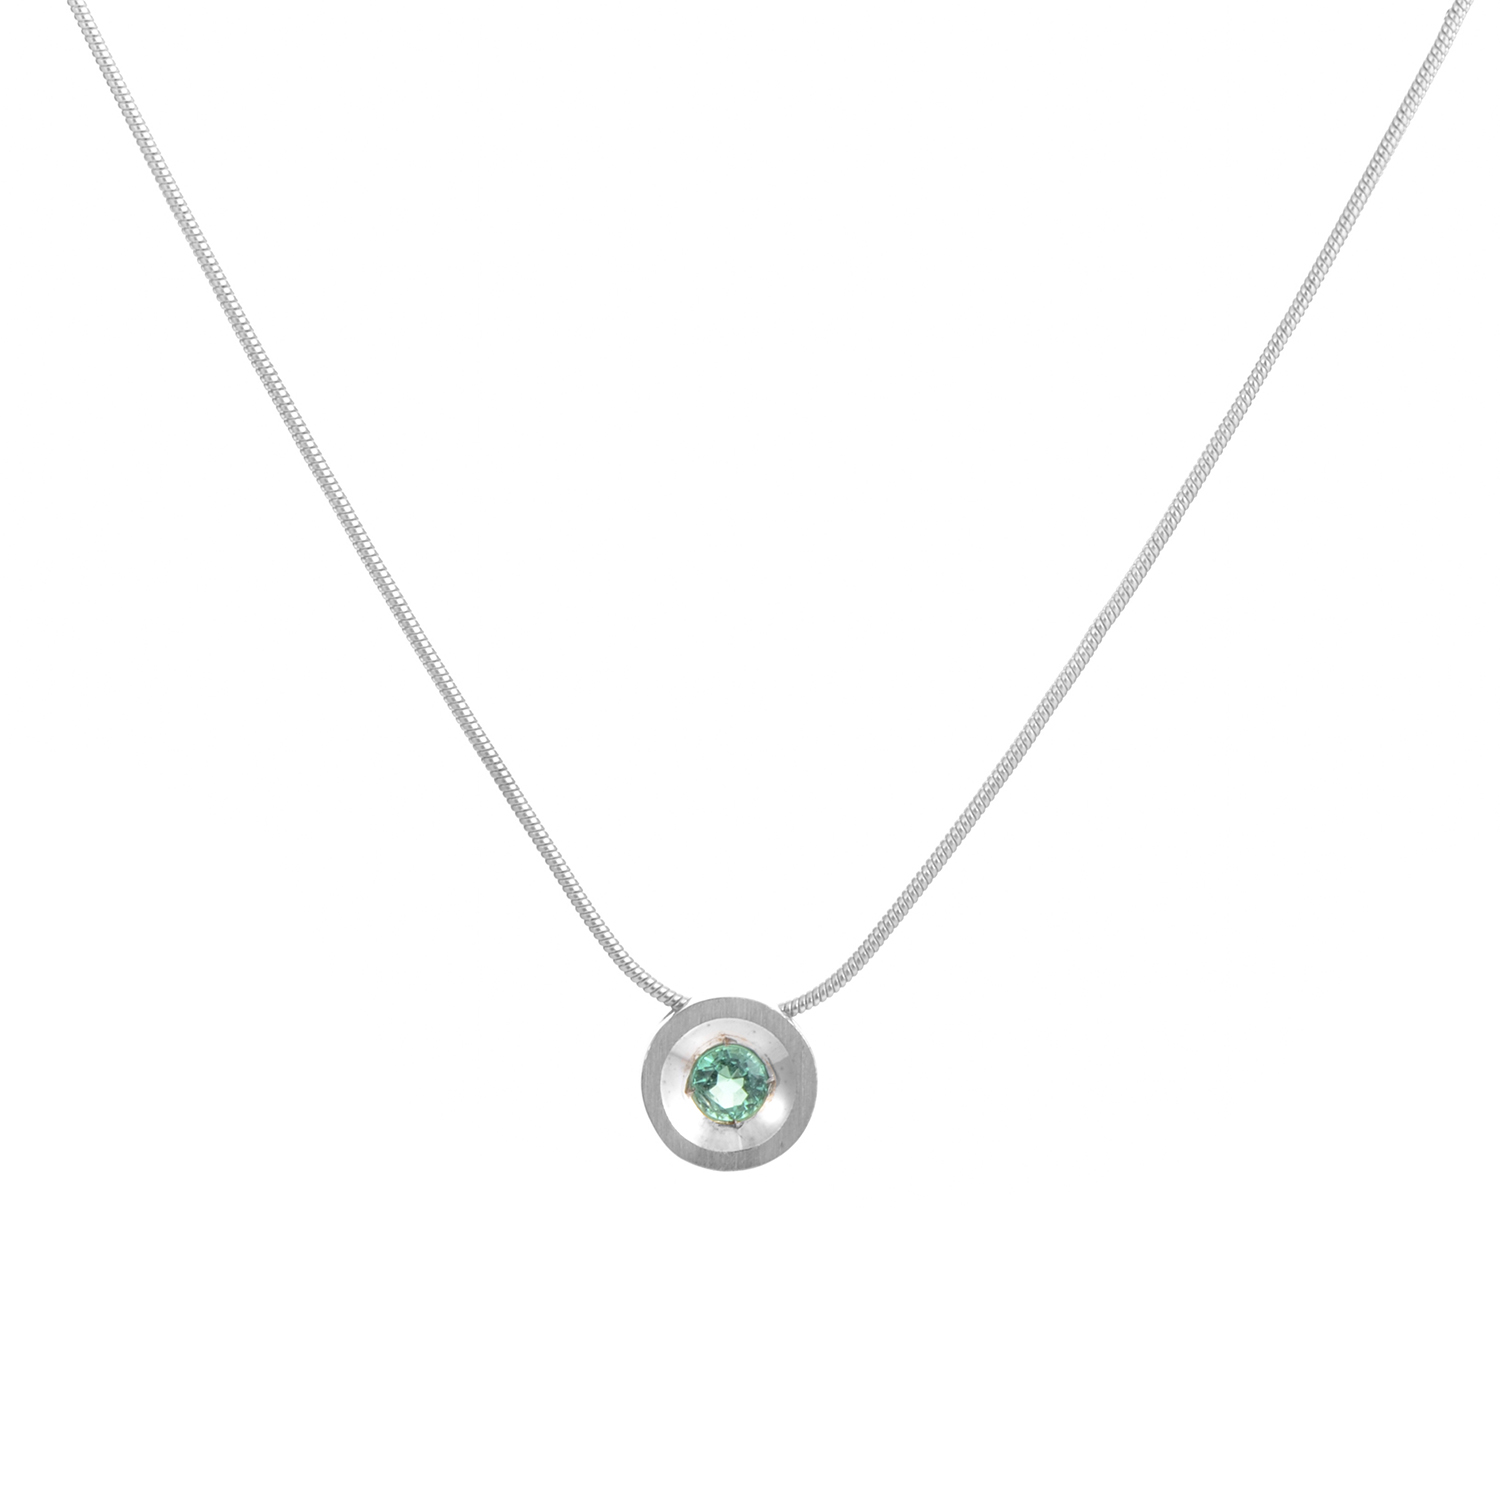 18K White Gold Emerald Pendant Necklace